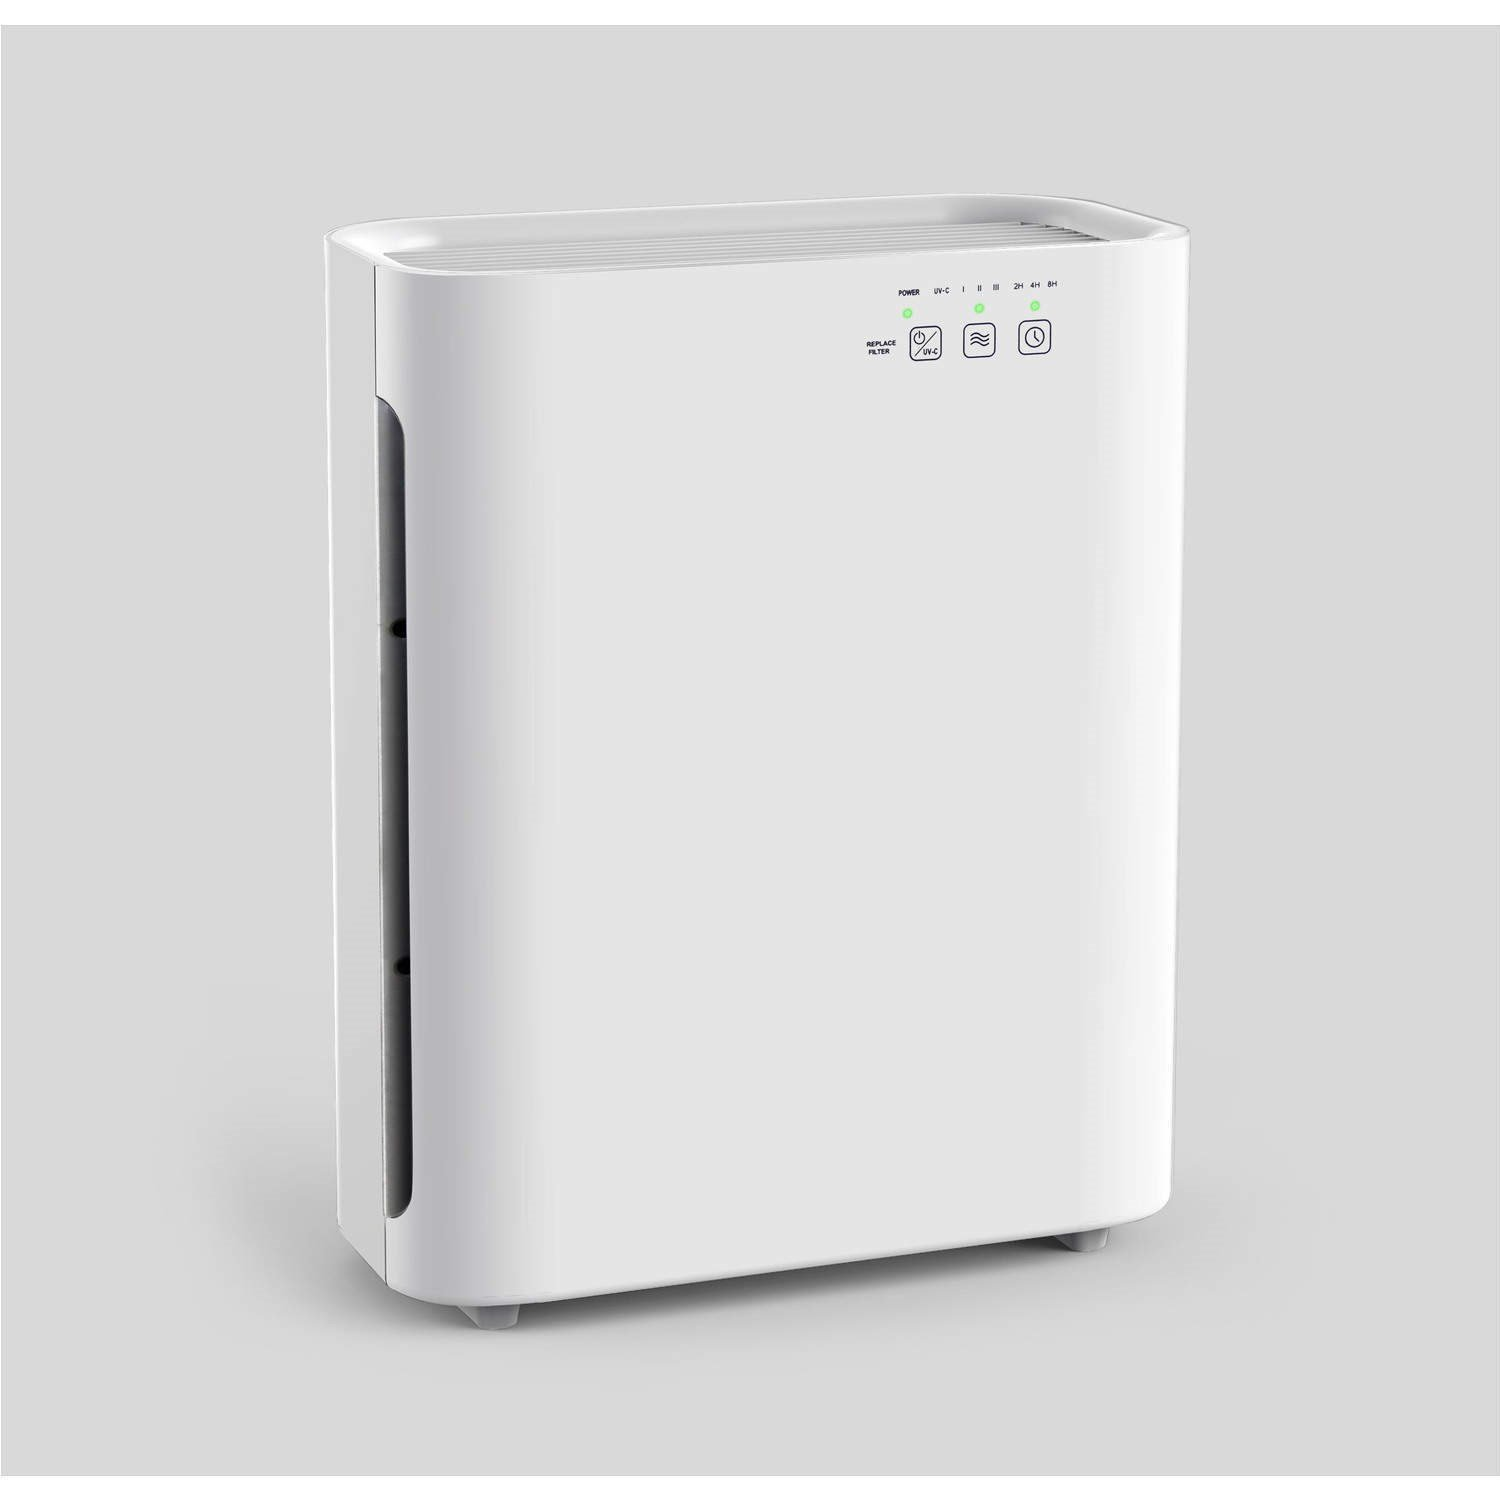 electriQ 6 Stage Air Purifier Cleans Air True HEPA Filter, UV, Ioniser -  Rooms up to 40m2 - Home Air Cleaner, Removes Allergens, Dust, Smoke, ...